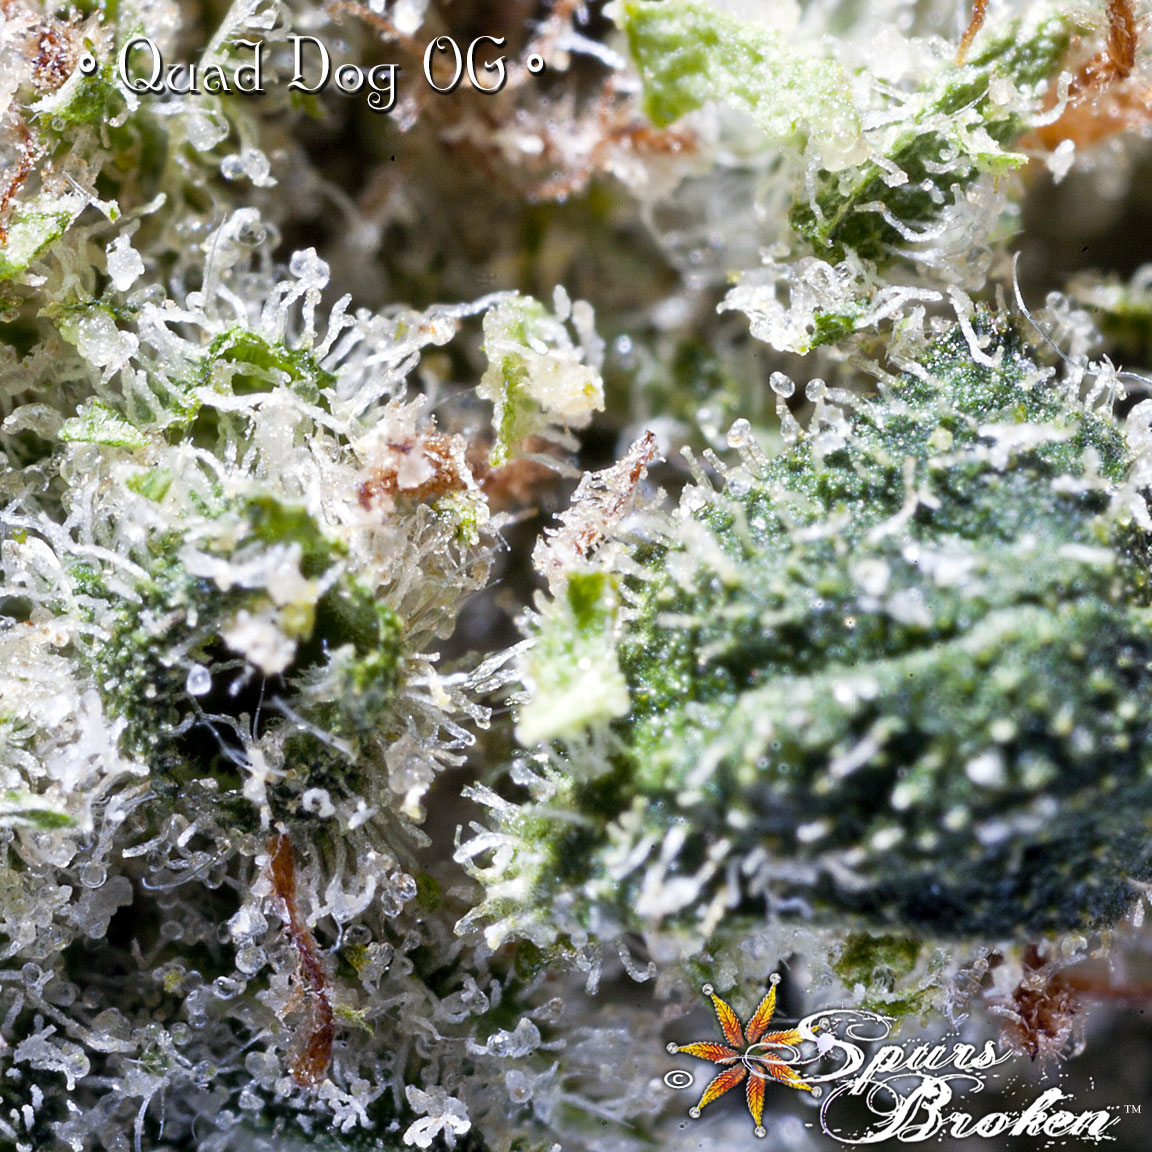 Quad Dog- Cannabis Macro Photography by Spurs Broken (Robert R. Sanders)